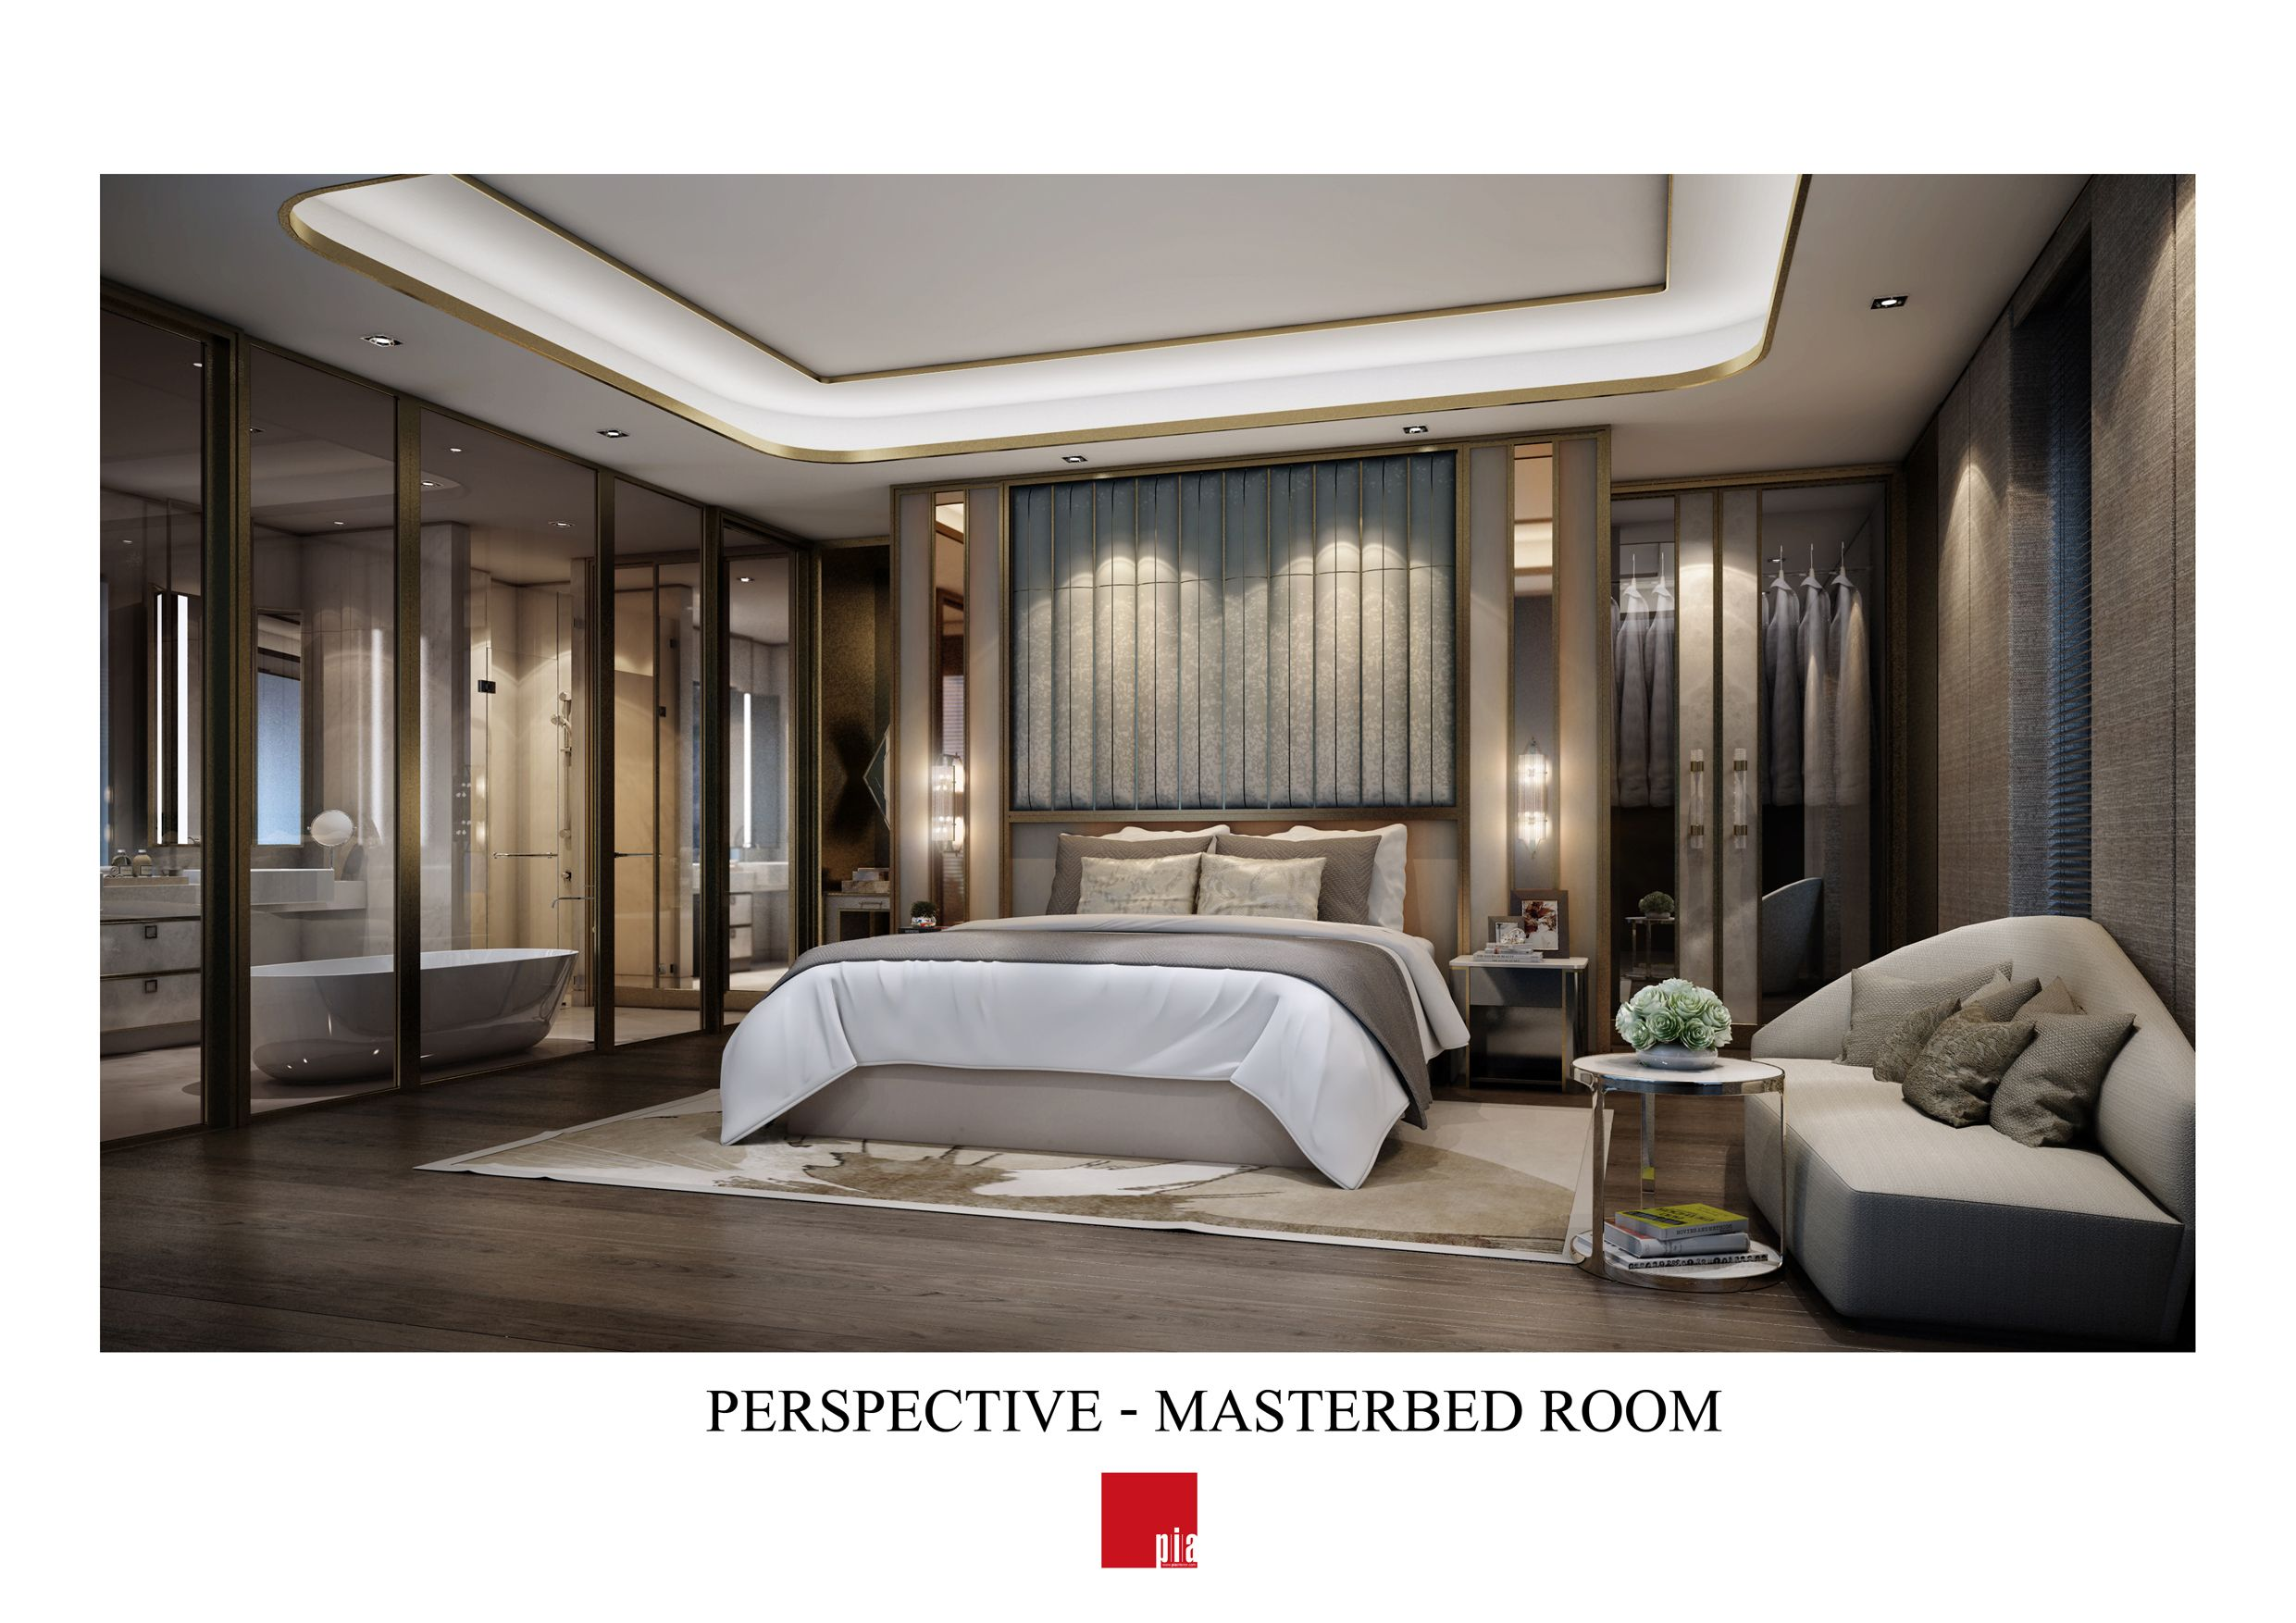 perspective-masterbed-room-view1